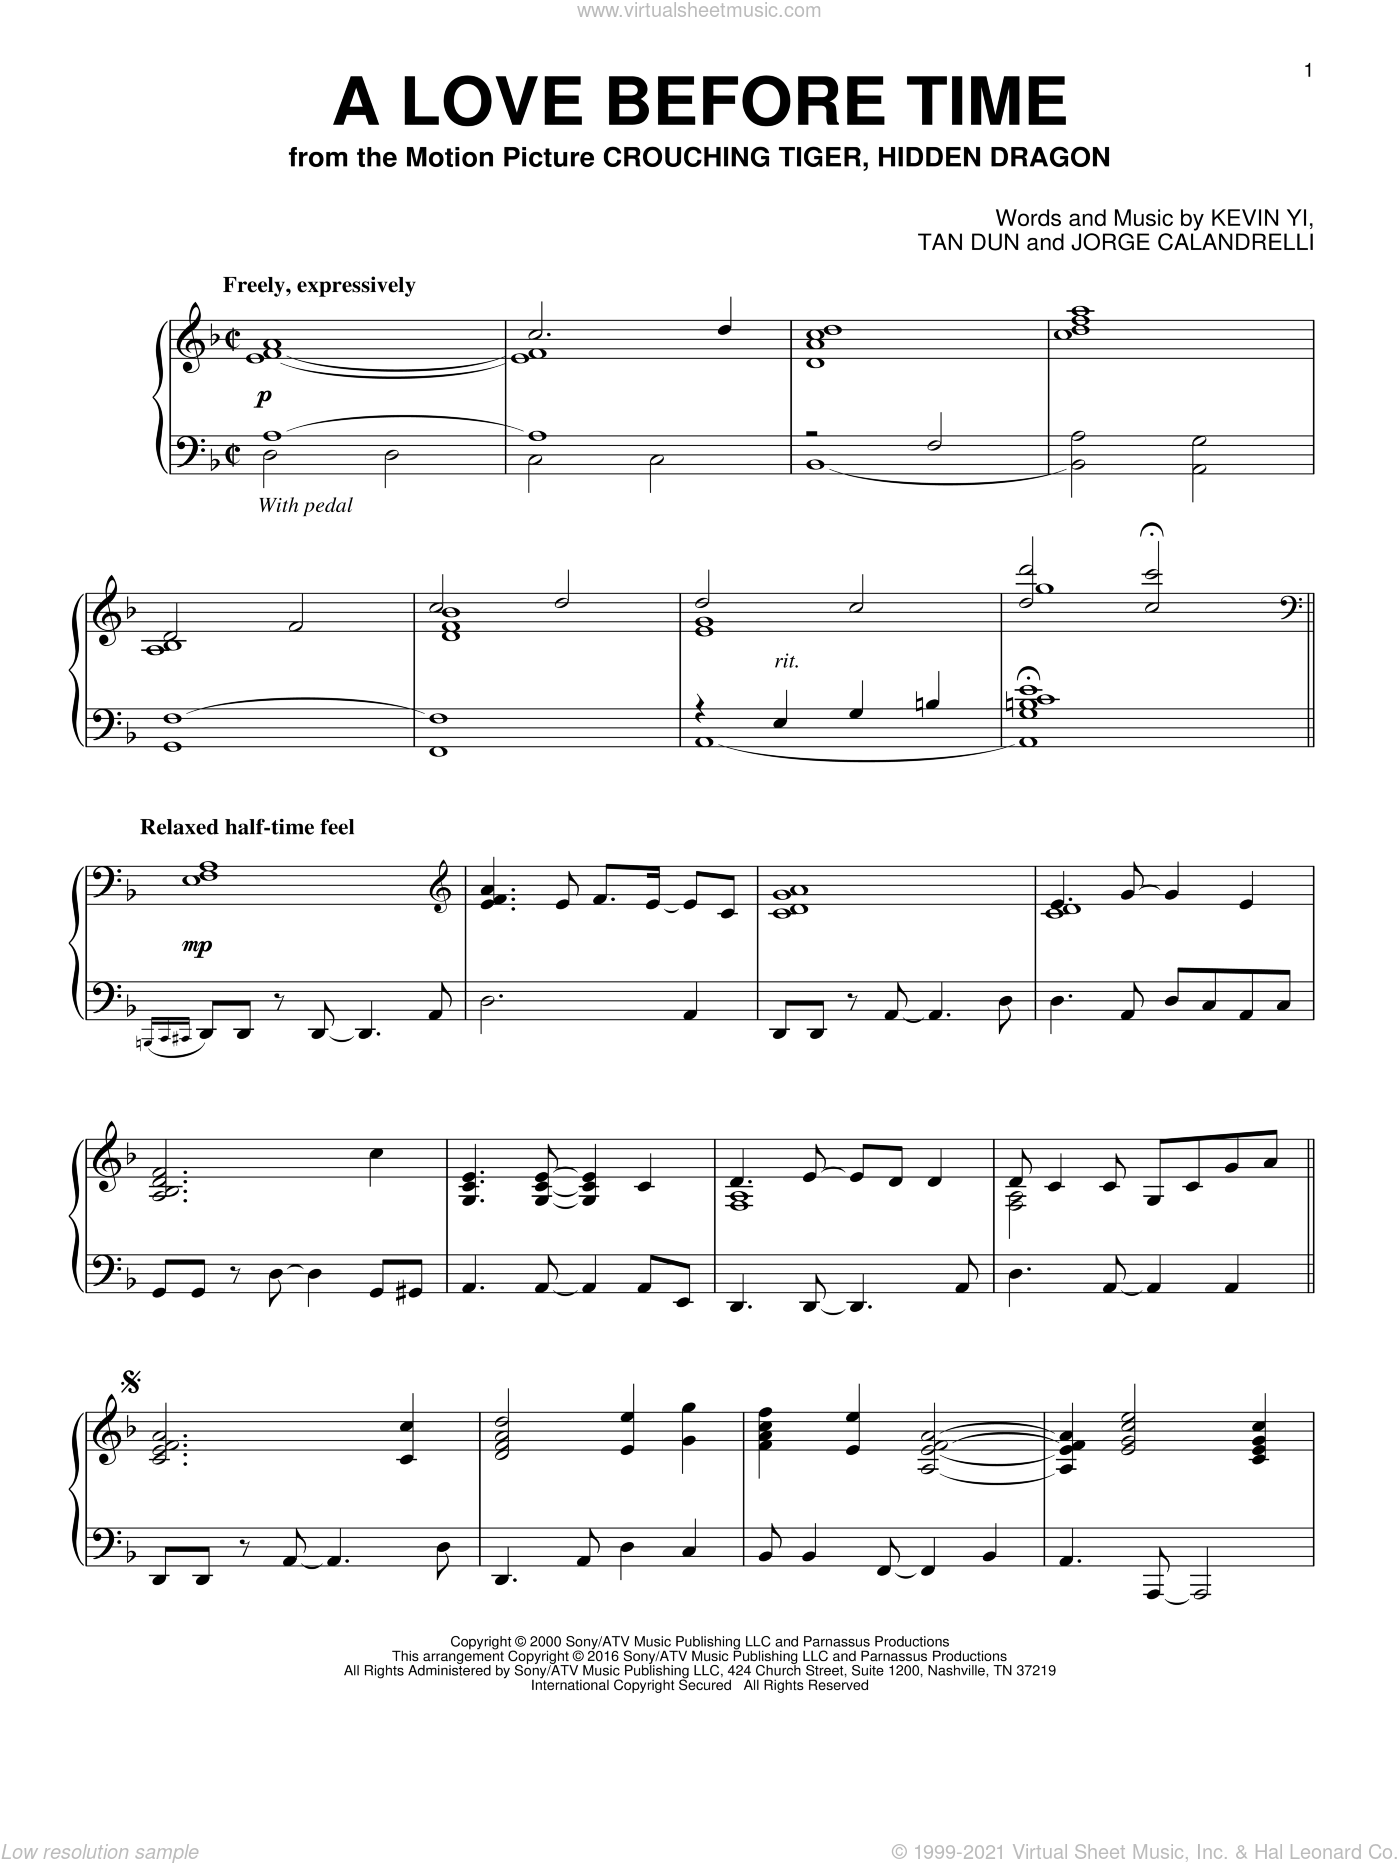 A Love Before Time sheet music for piano solo by Tan Dun, Jorge Calandrelli and Kevin Yi, intermediate skill level